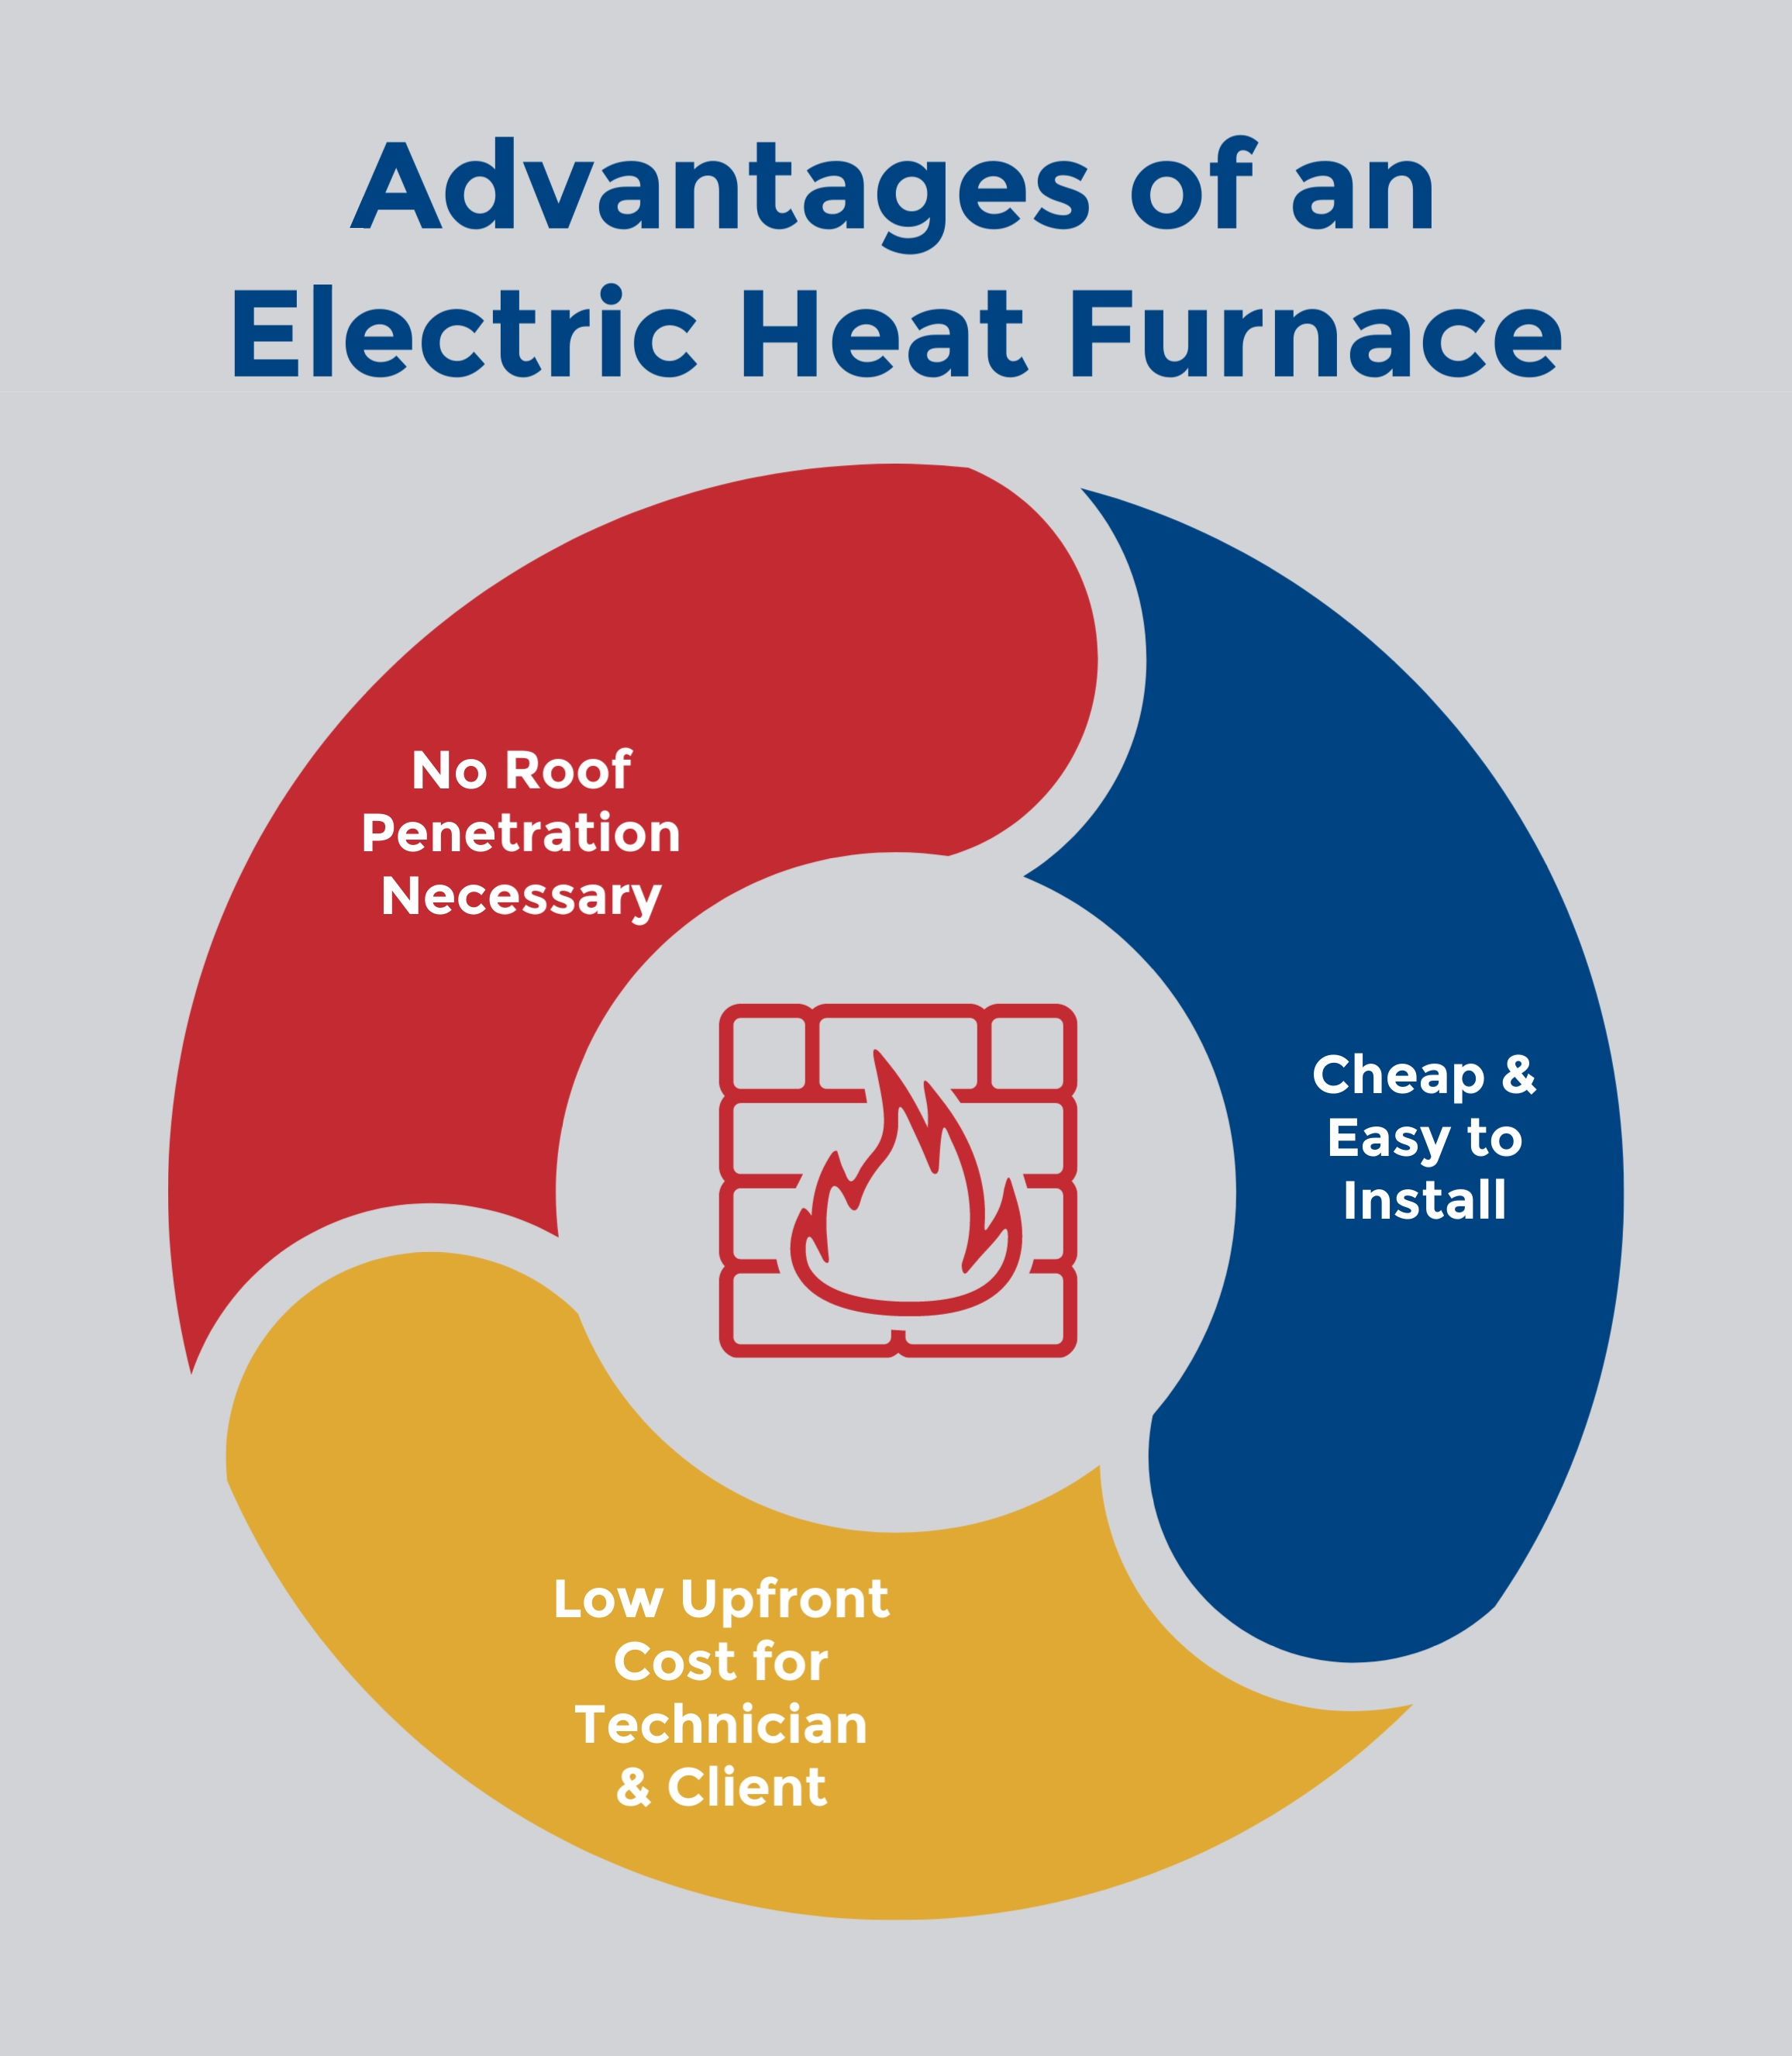 Electric Heat Furnaces: An Overview, The Training Center of Air Conditioning & Heating